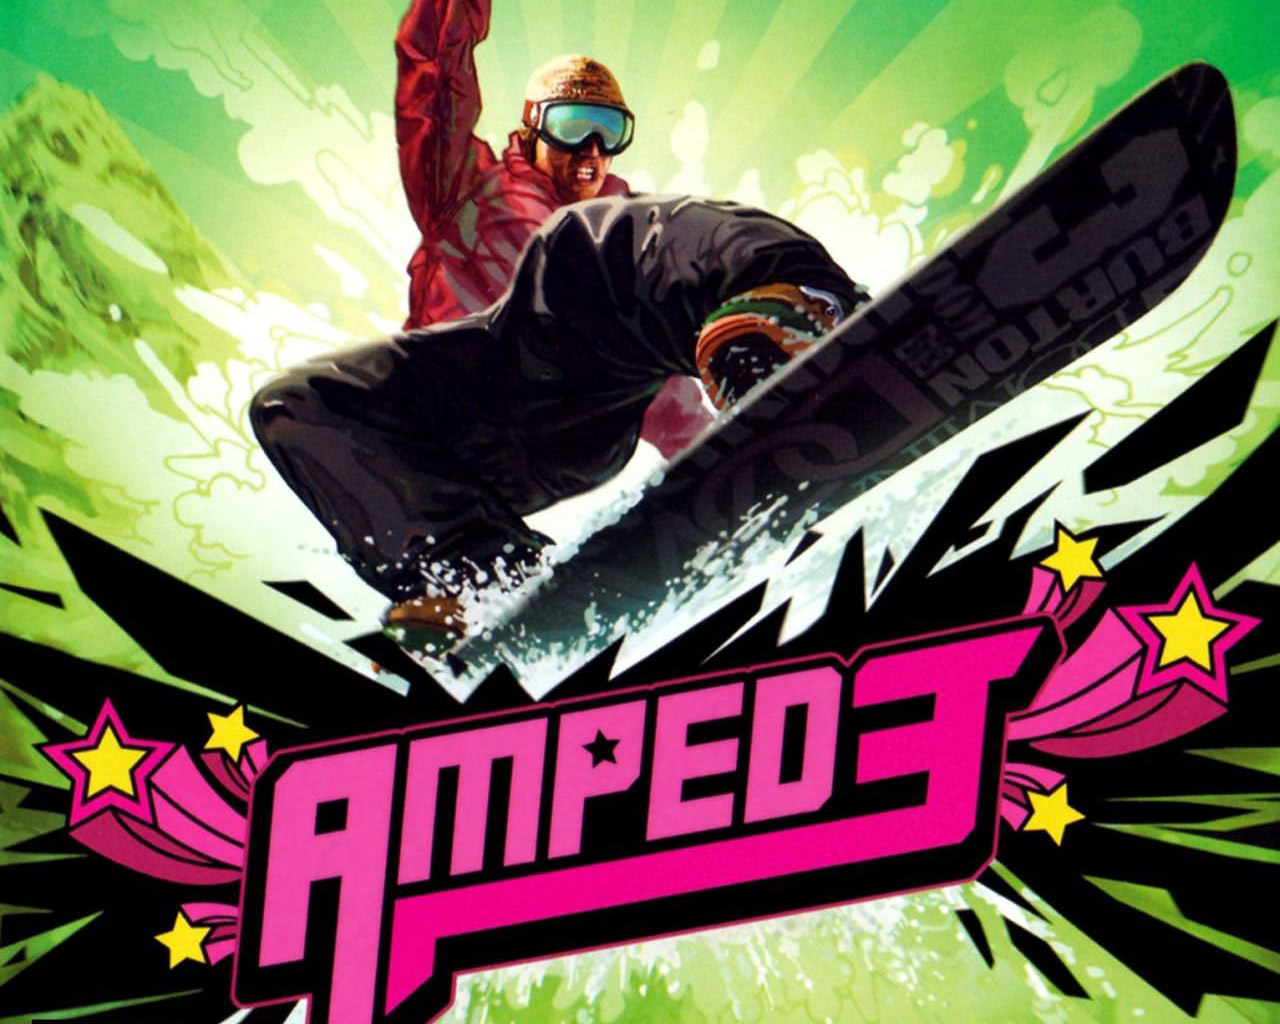 Amped 3 Wallpaper in 1280x1024